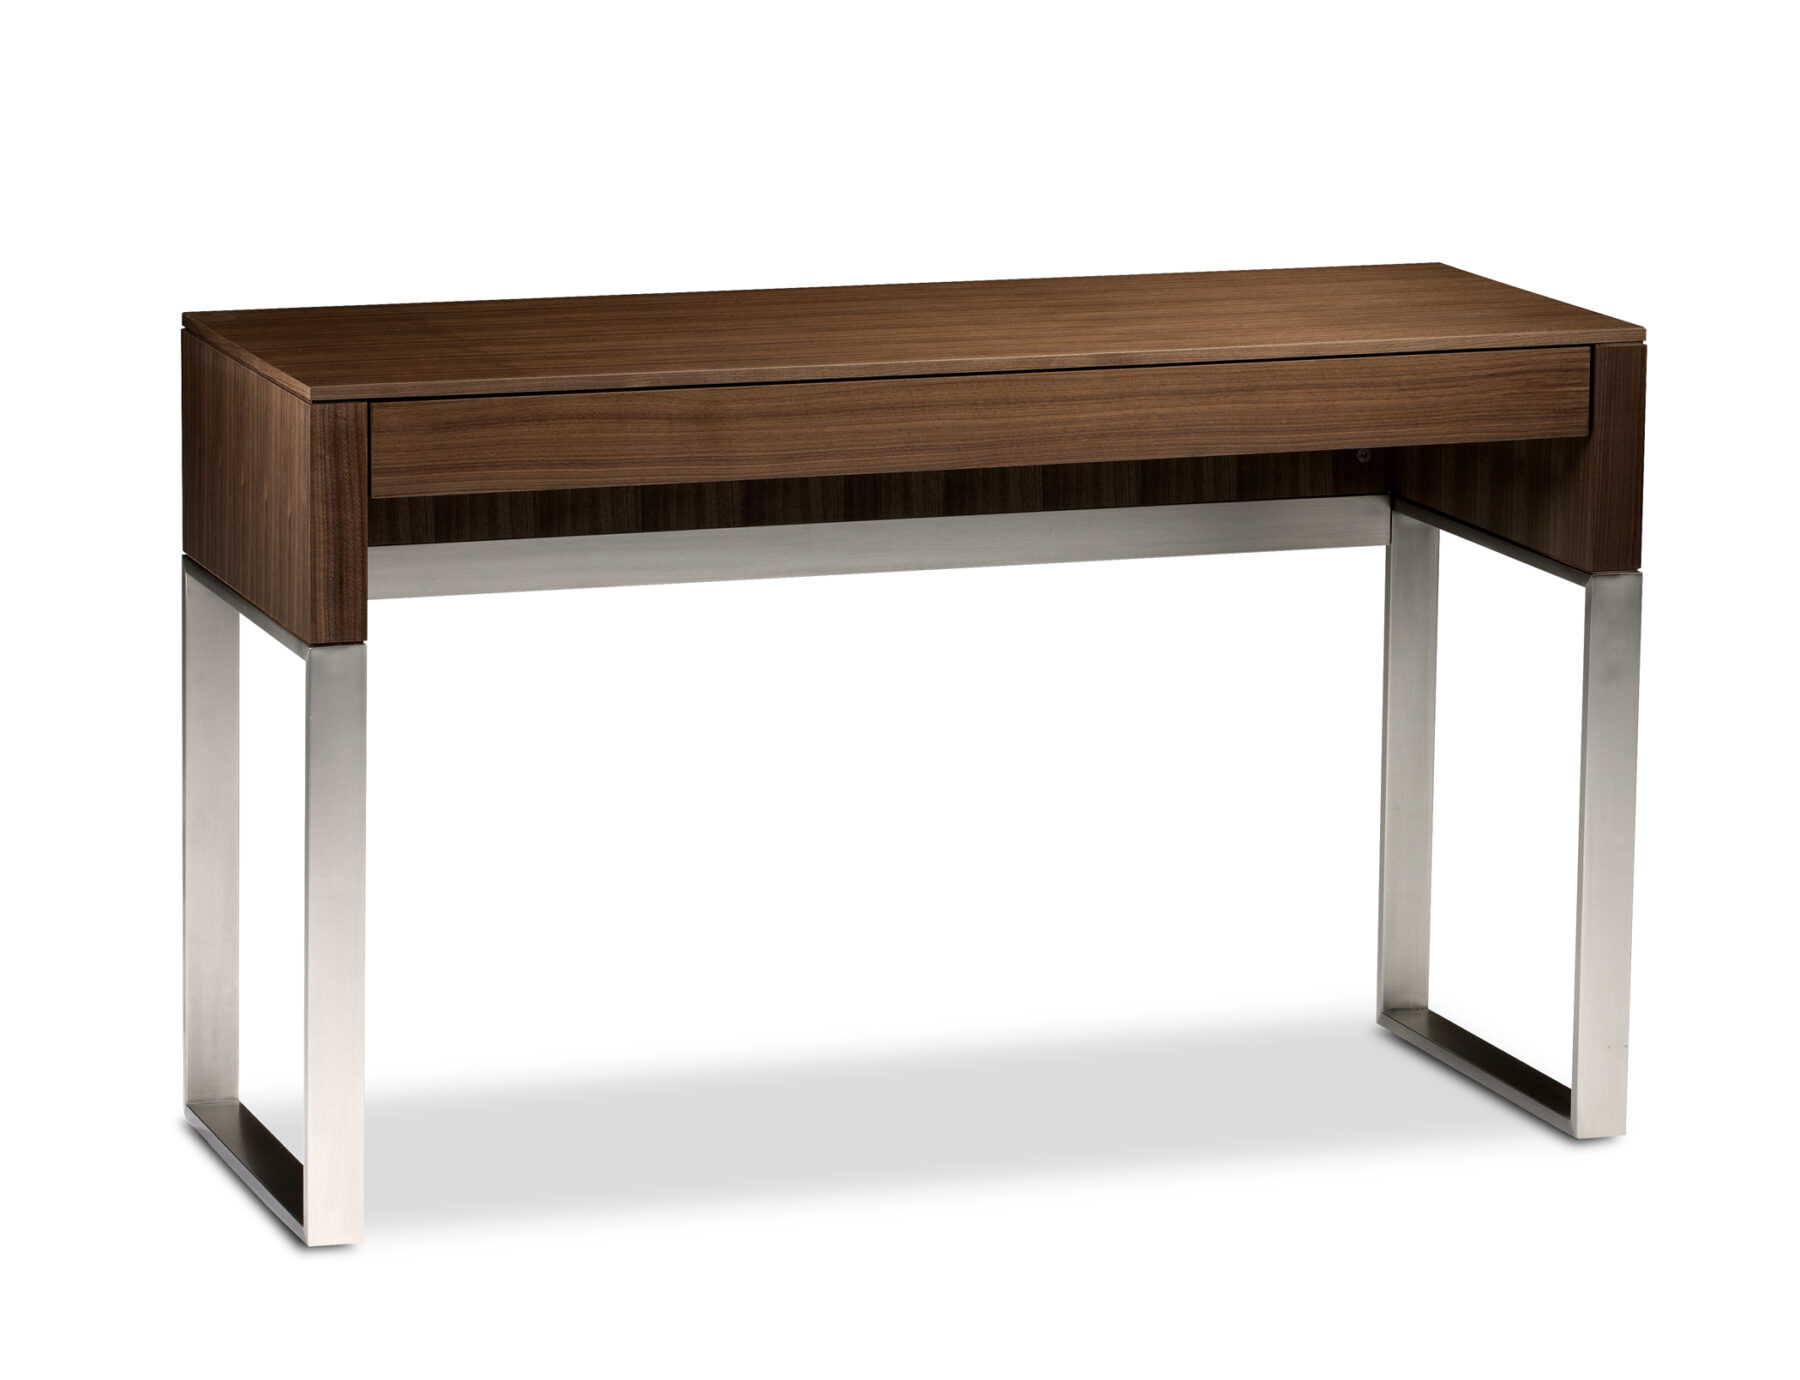 cascadia-6202-walnut-bdi-console-table-1